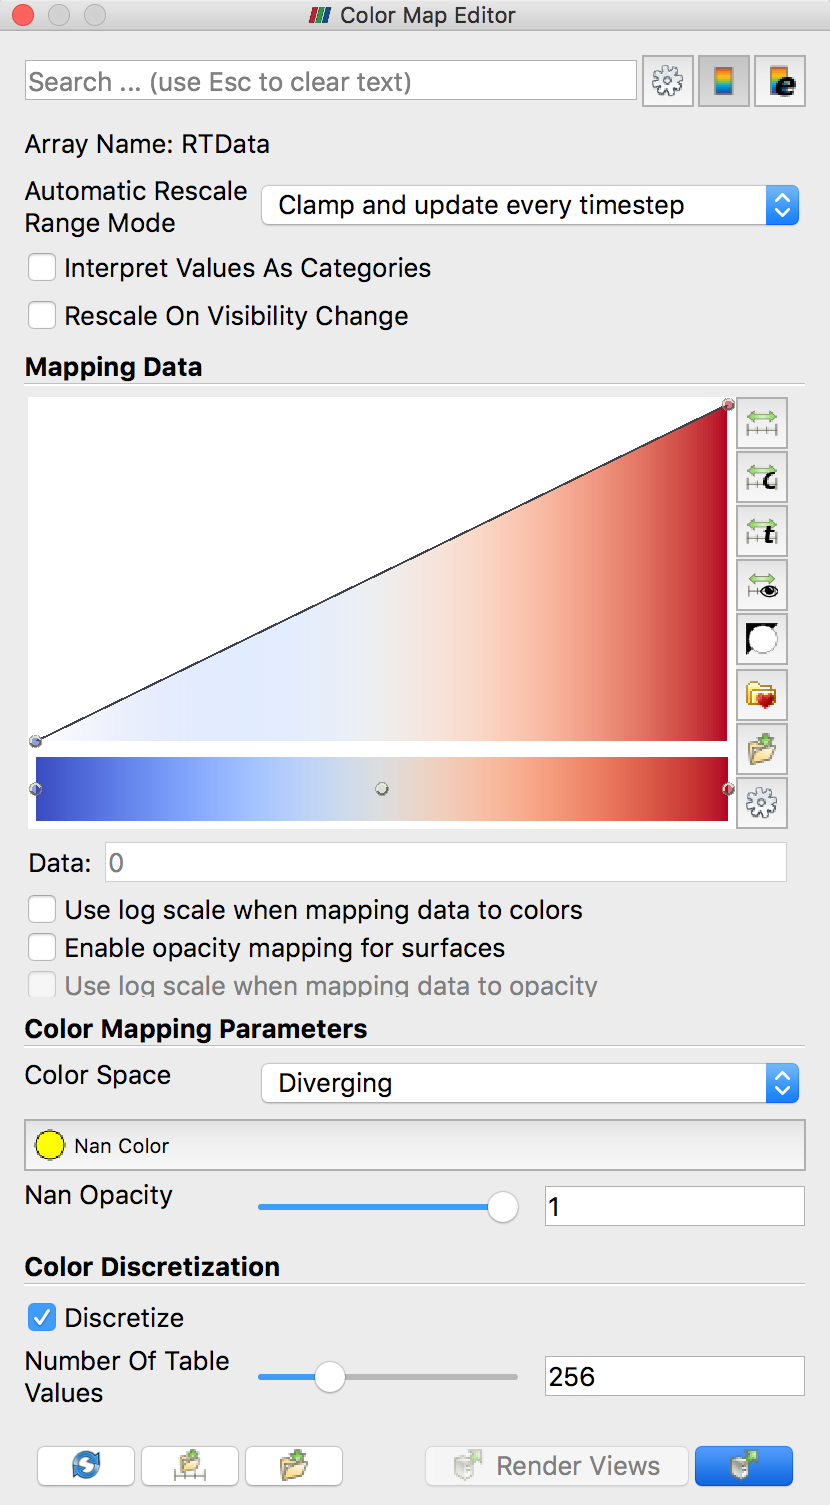 ParaView/Images/ColorMapEditor.png